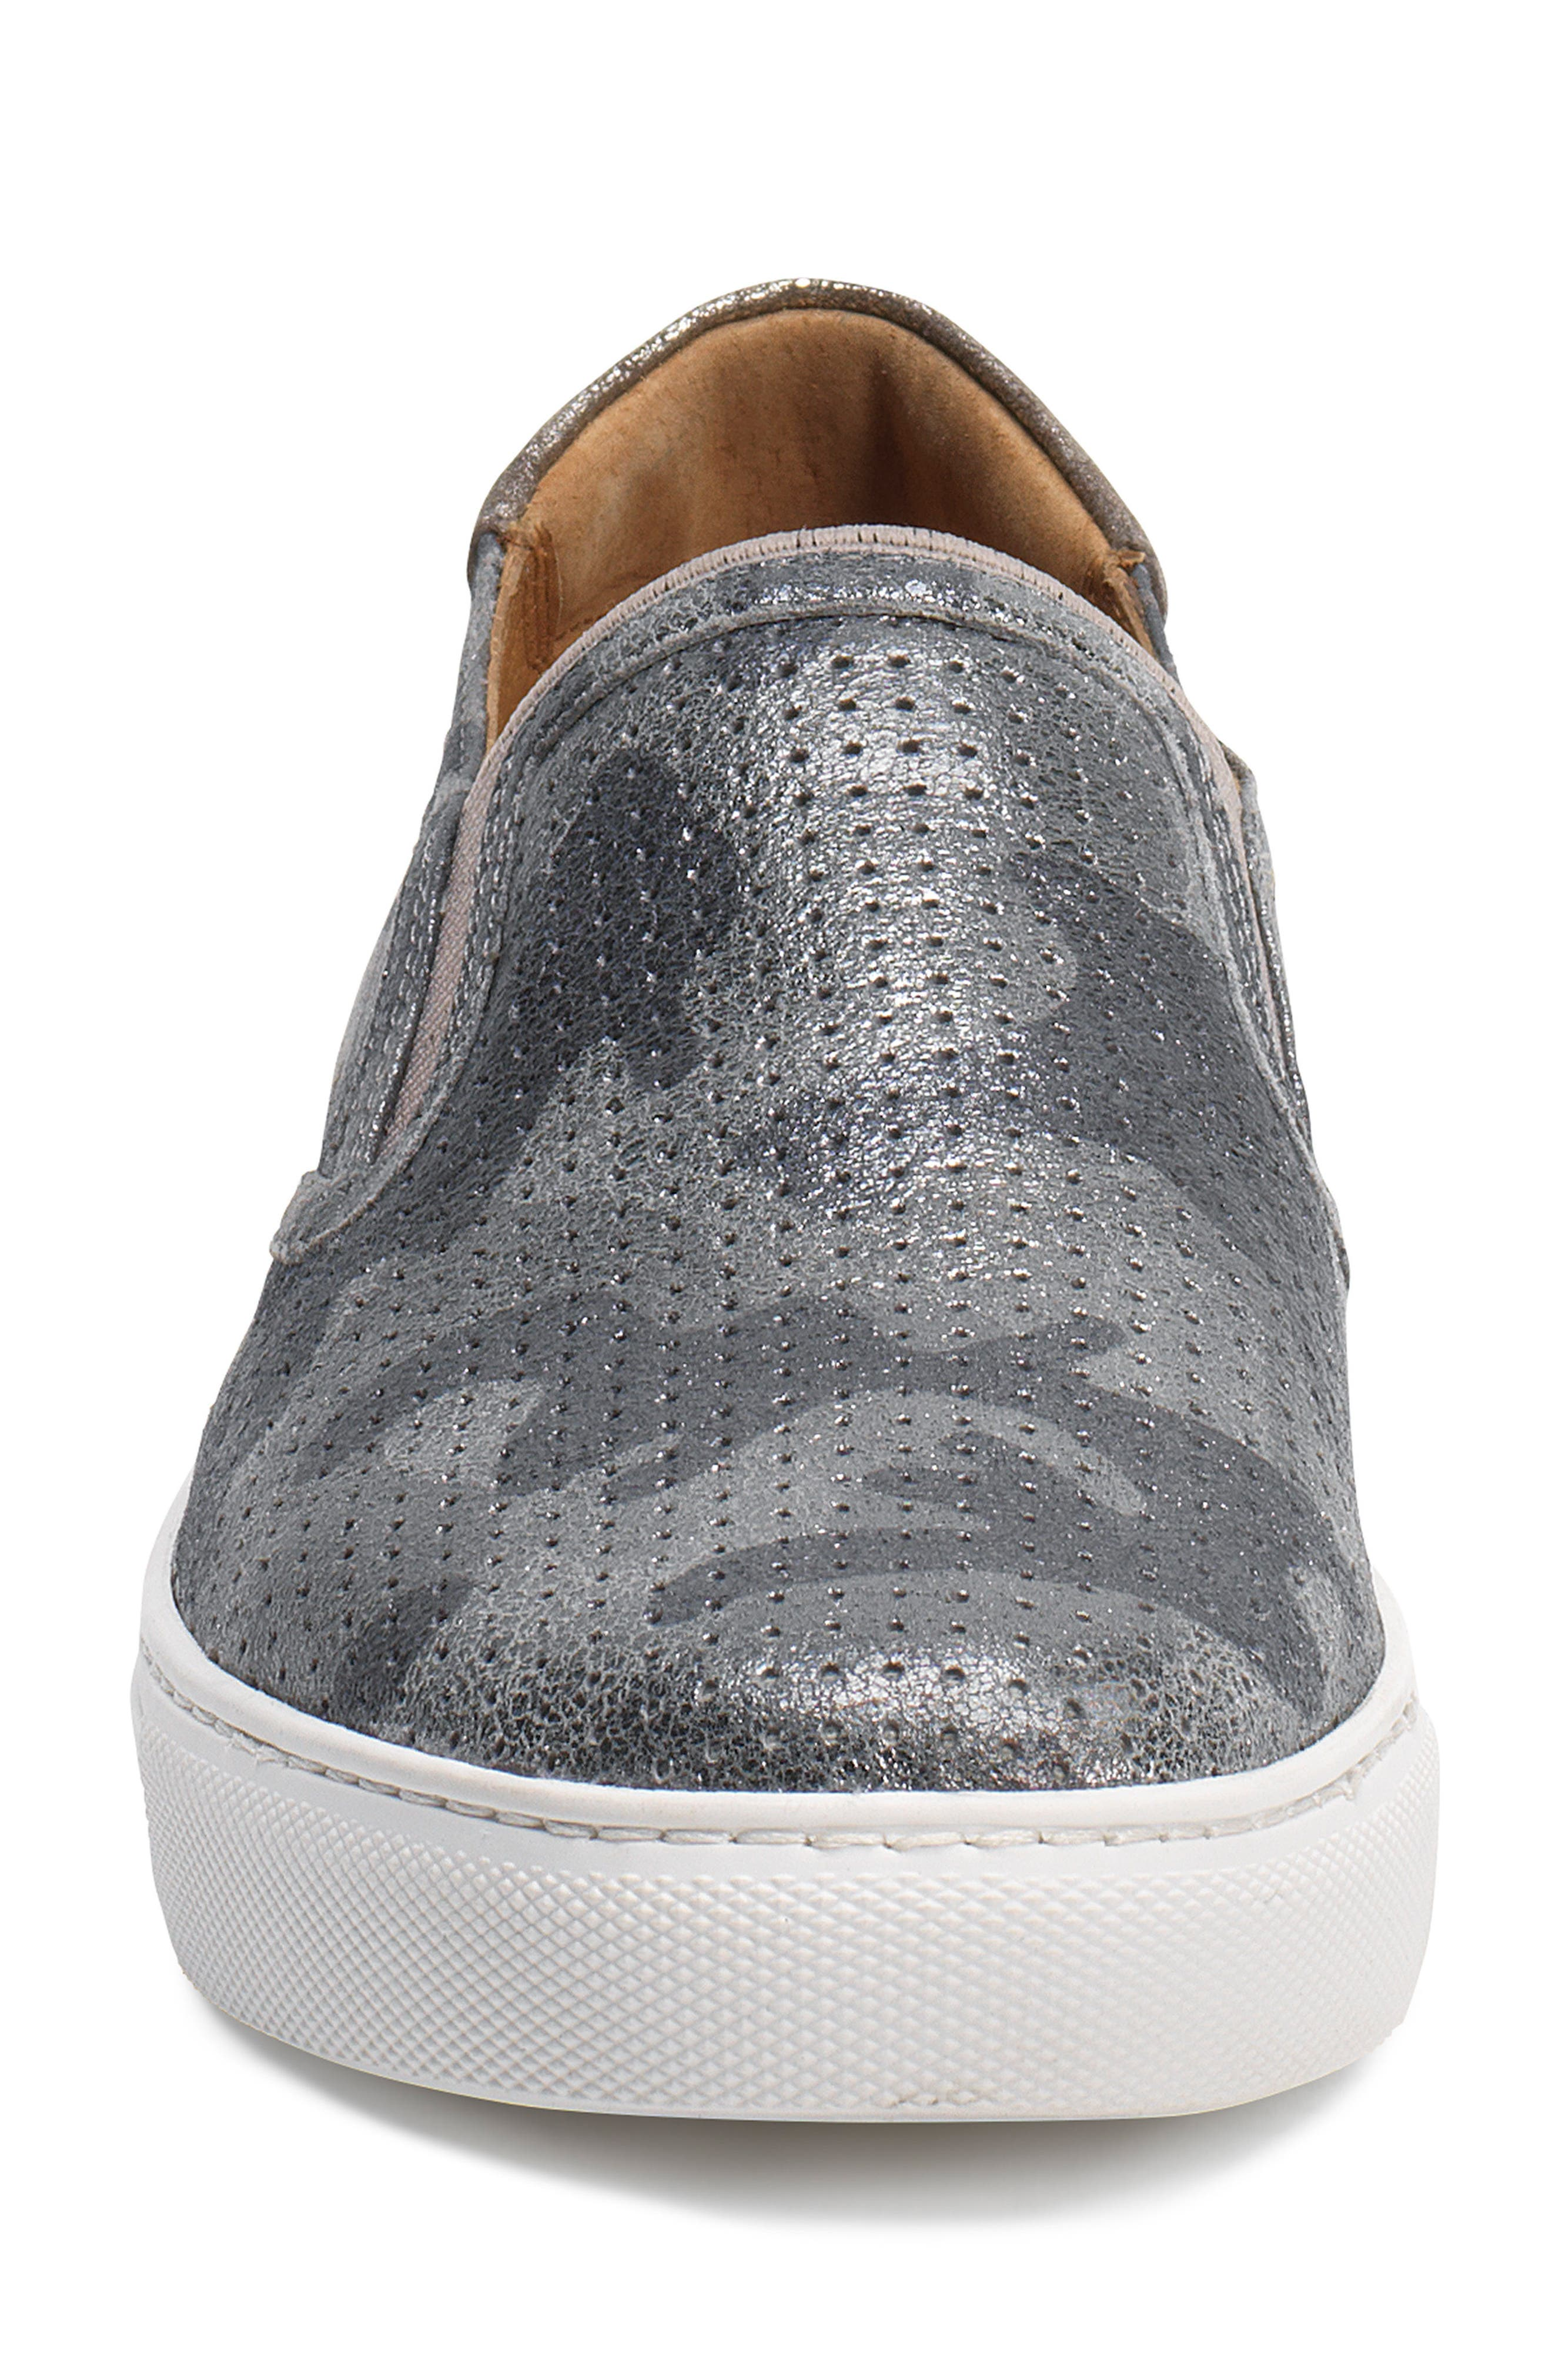 Lillian Water Resistant Slip-On Sneaker,                             Alternate thumbnail 4, color,                             Pewter Camo Leather